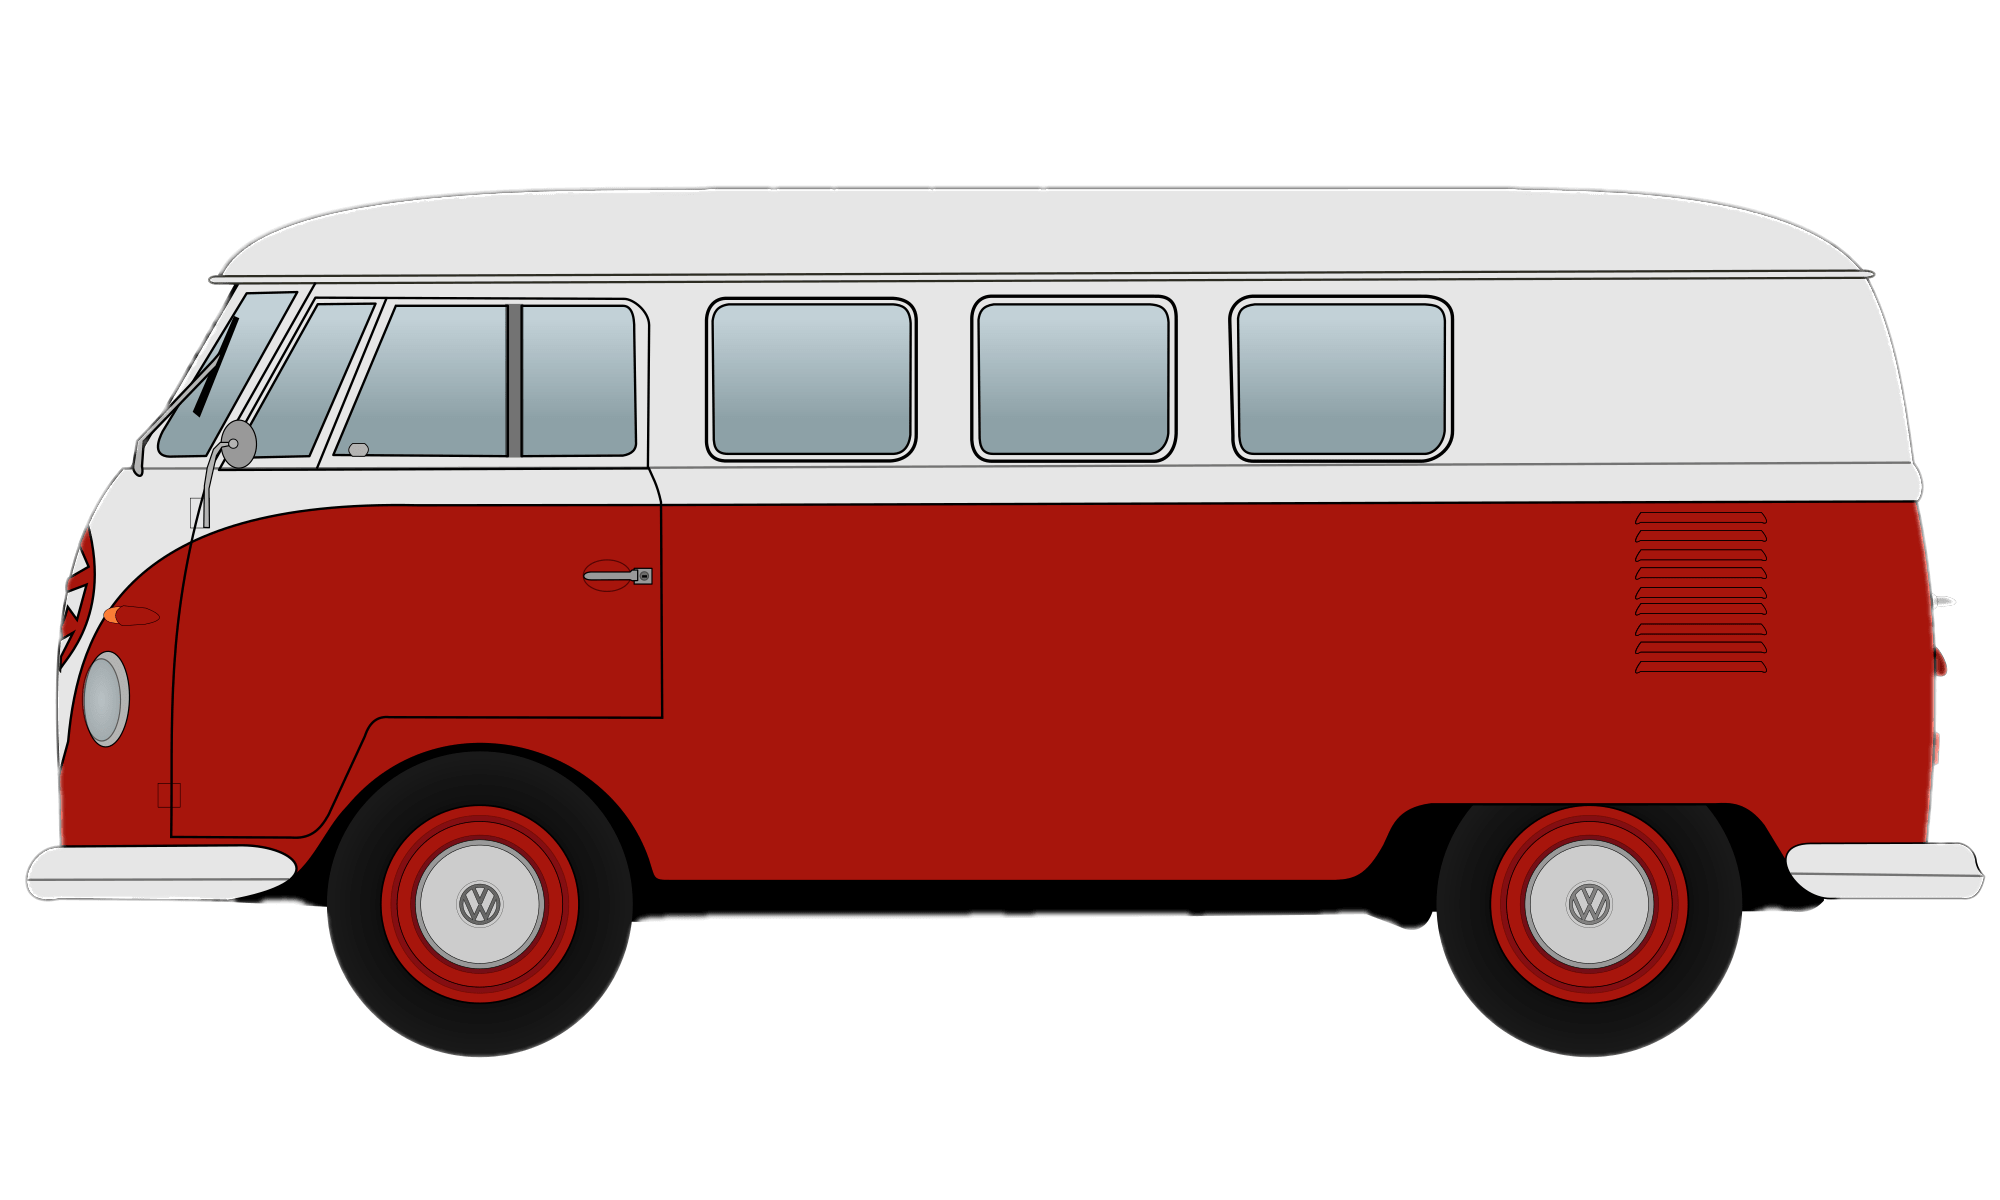 Red Volkswagen Camper Van Clipart Transparent Png Stickpng Peppermint patty illustration, peppermint patty charlie brown lucy van pelt marcie, others, miscellaneous, comics, child png. stickpng